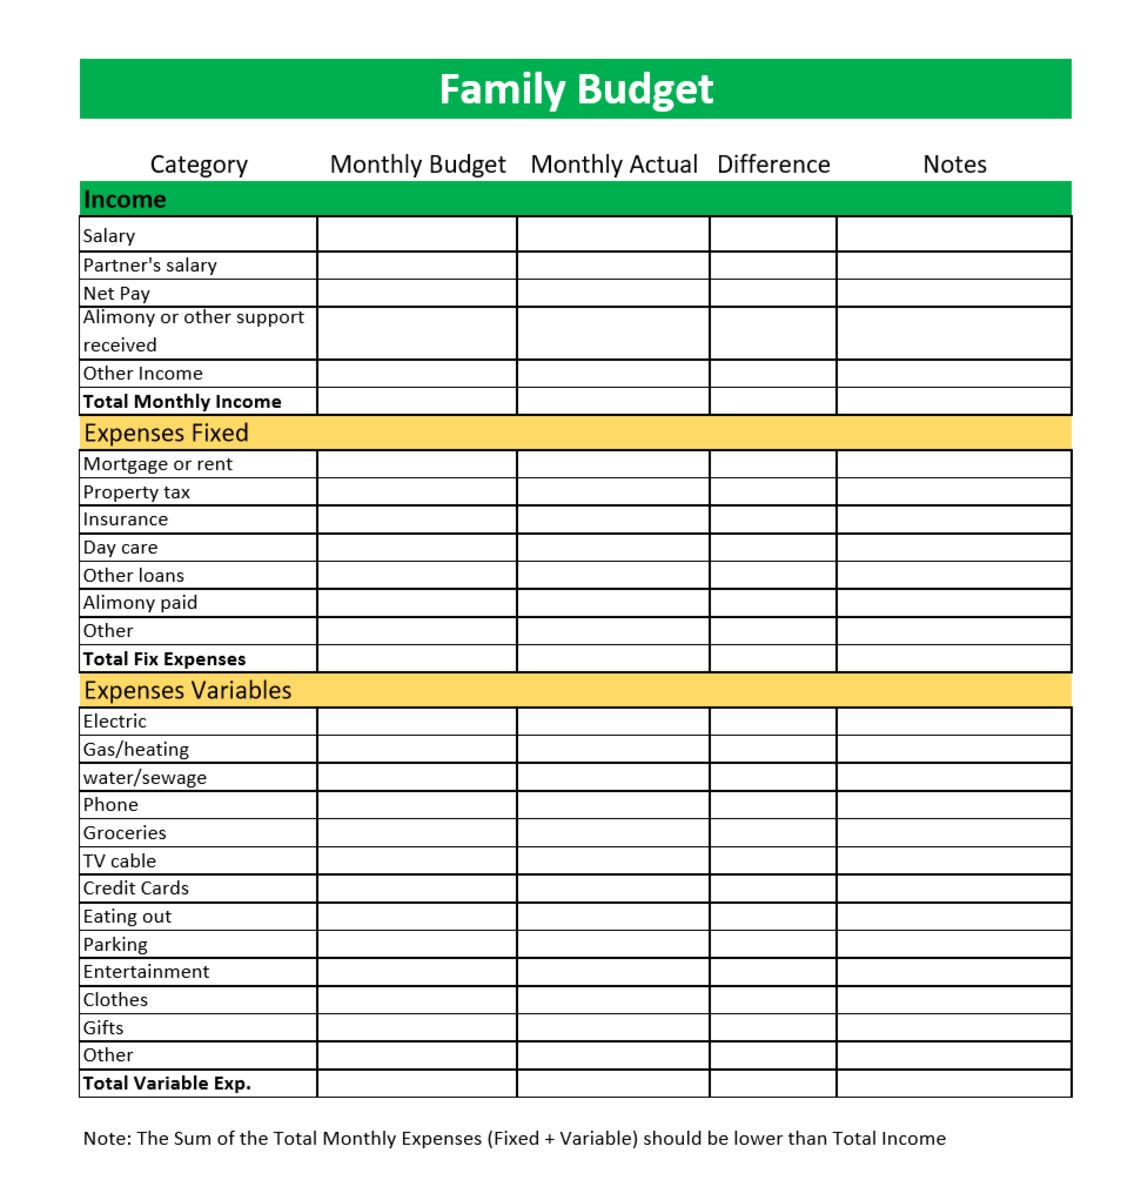 The secret to keeping the budget simple is to create broad expense categories without going into too much detail. Make sure you include all expenses and sources of income.